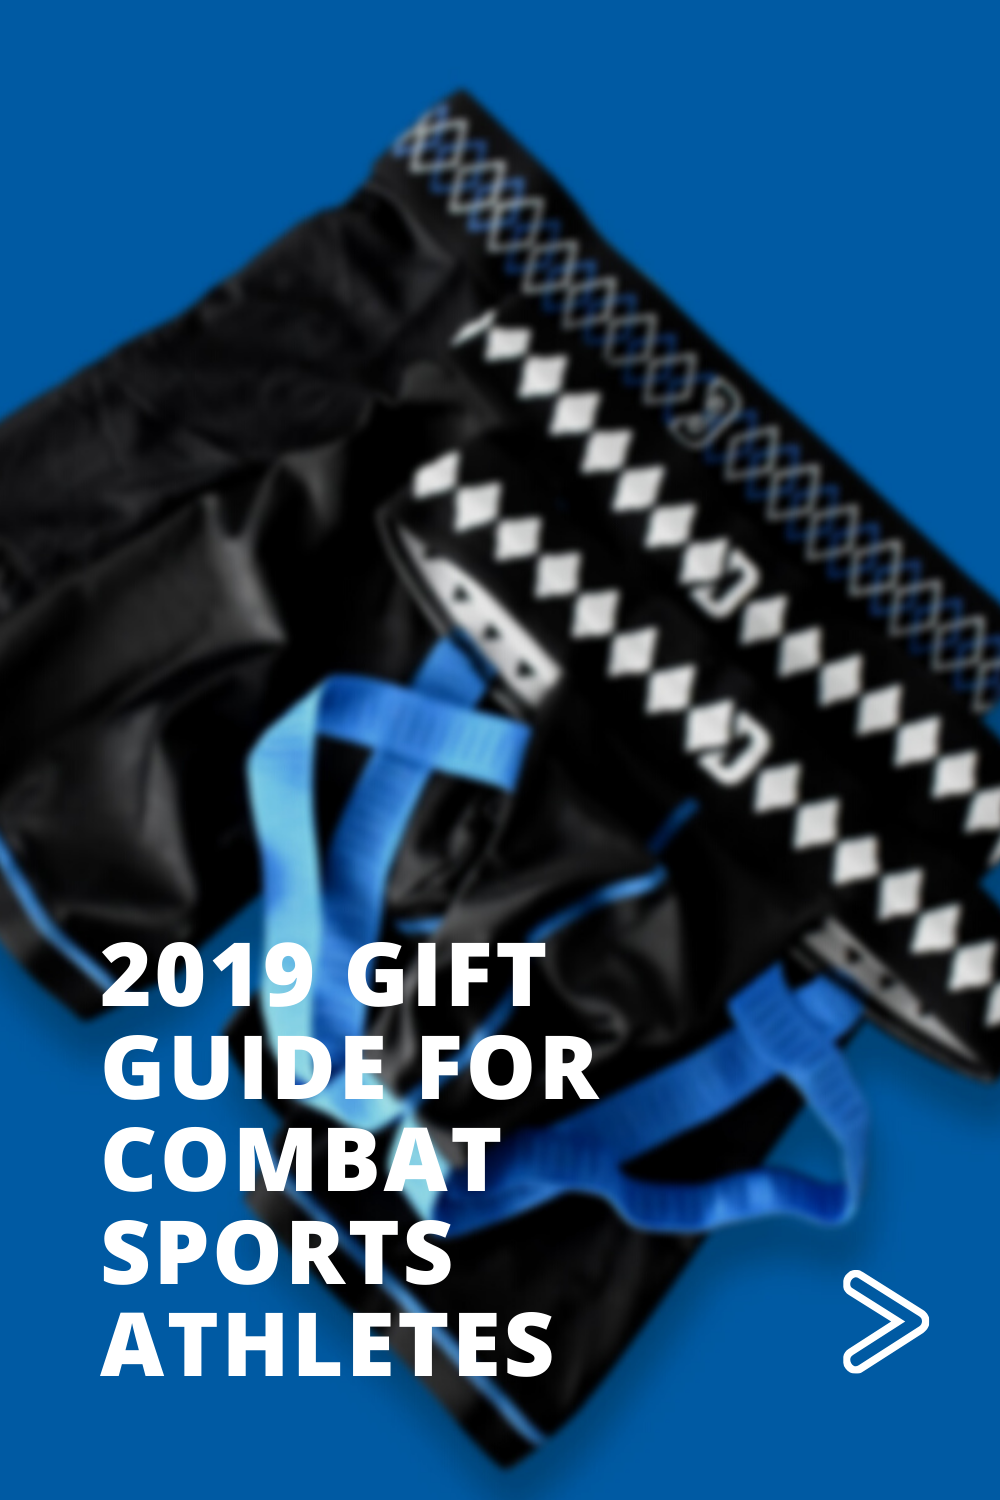 2019 Holiday Gift Guide for Combat Sports Athletes